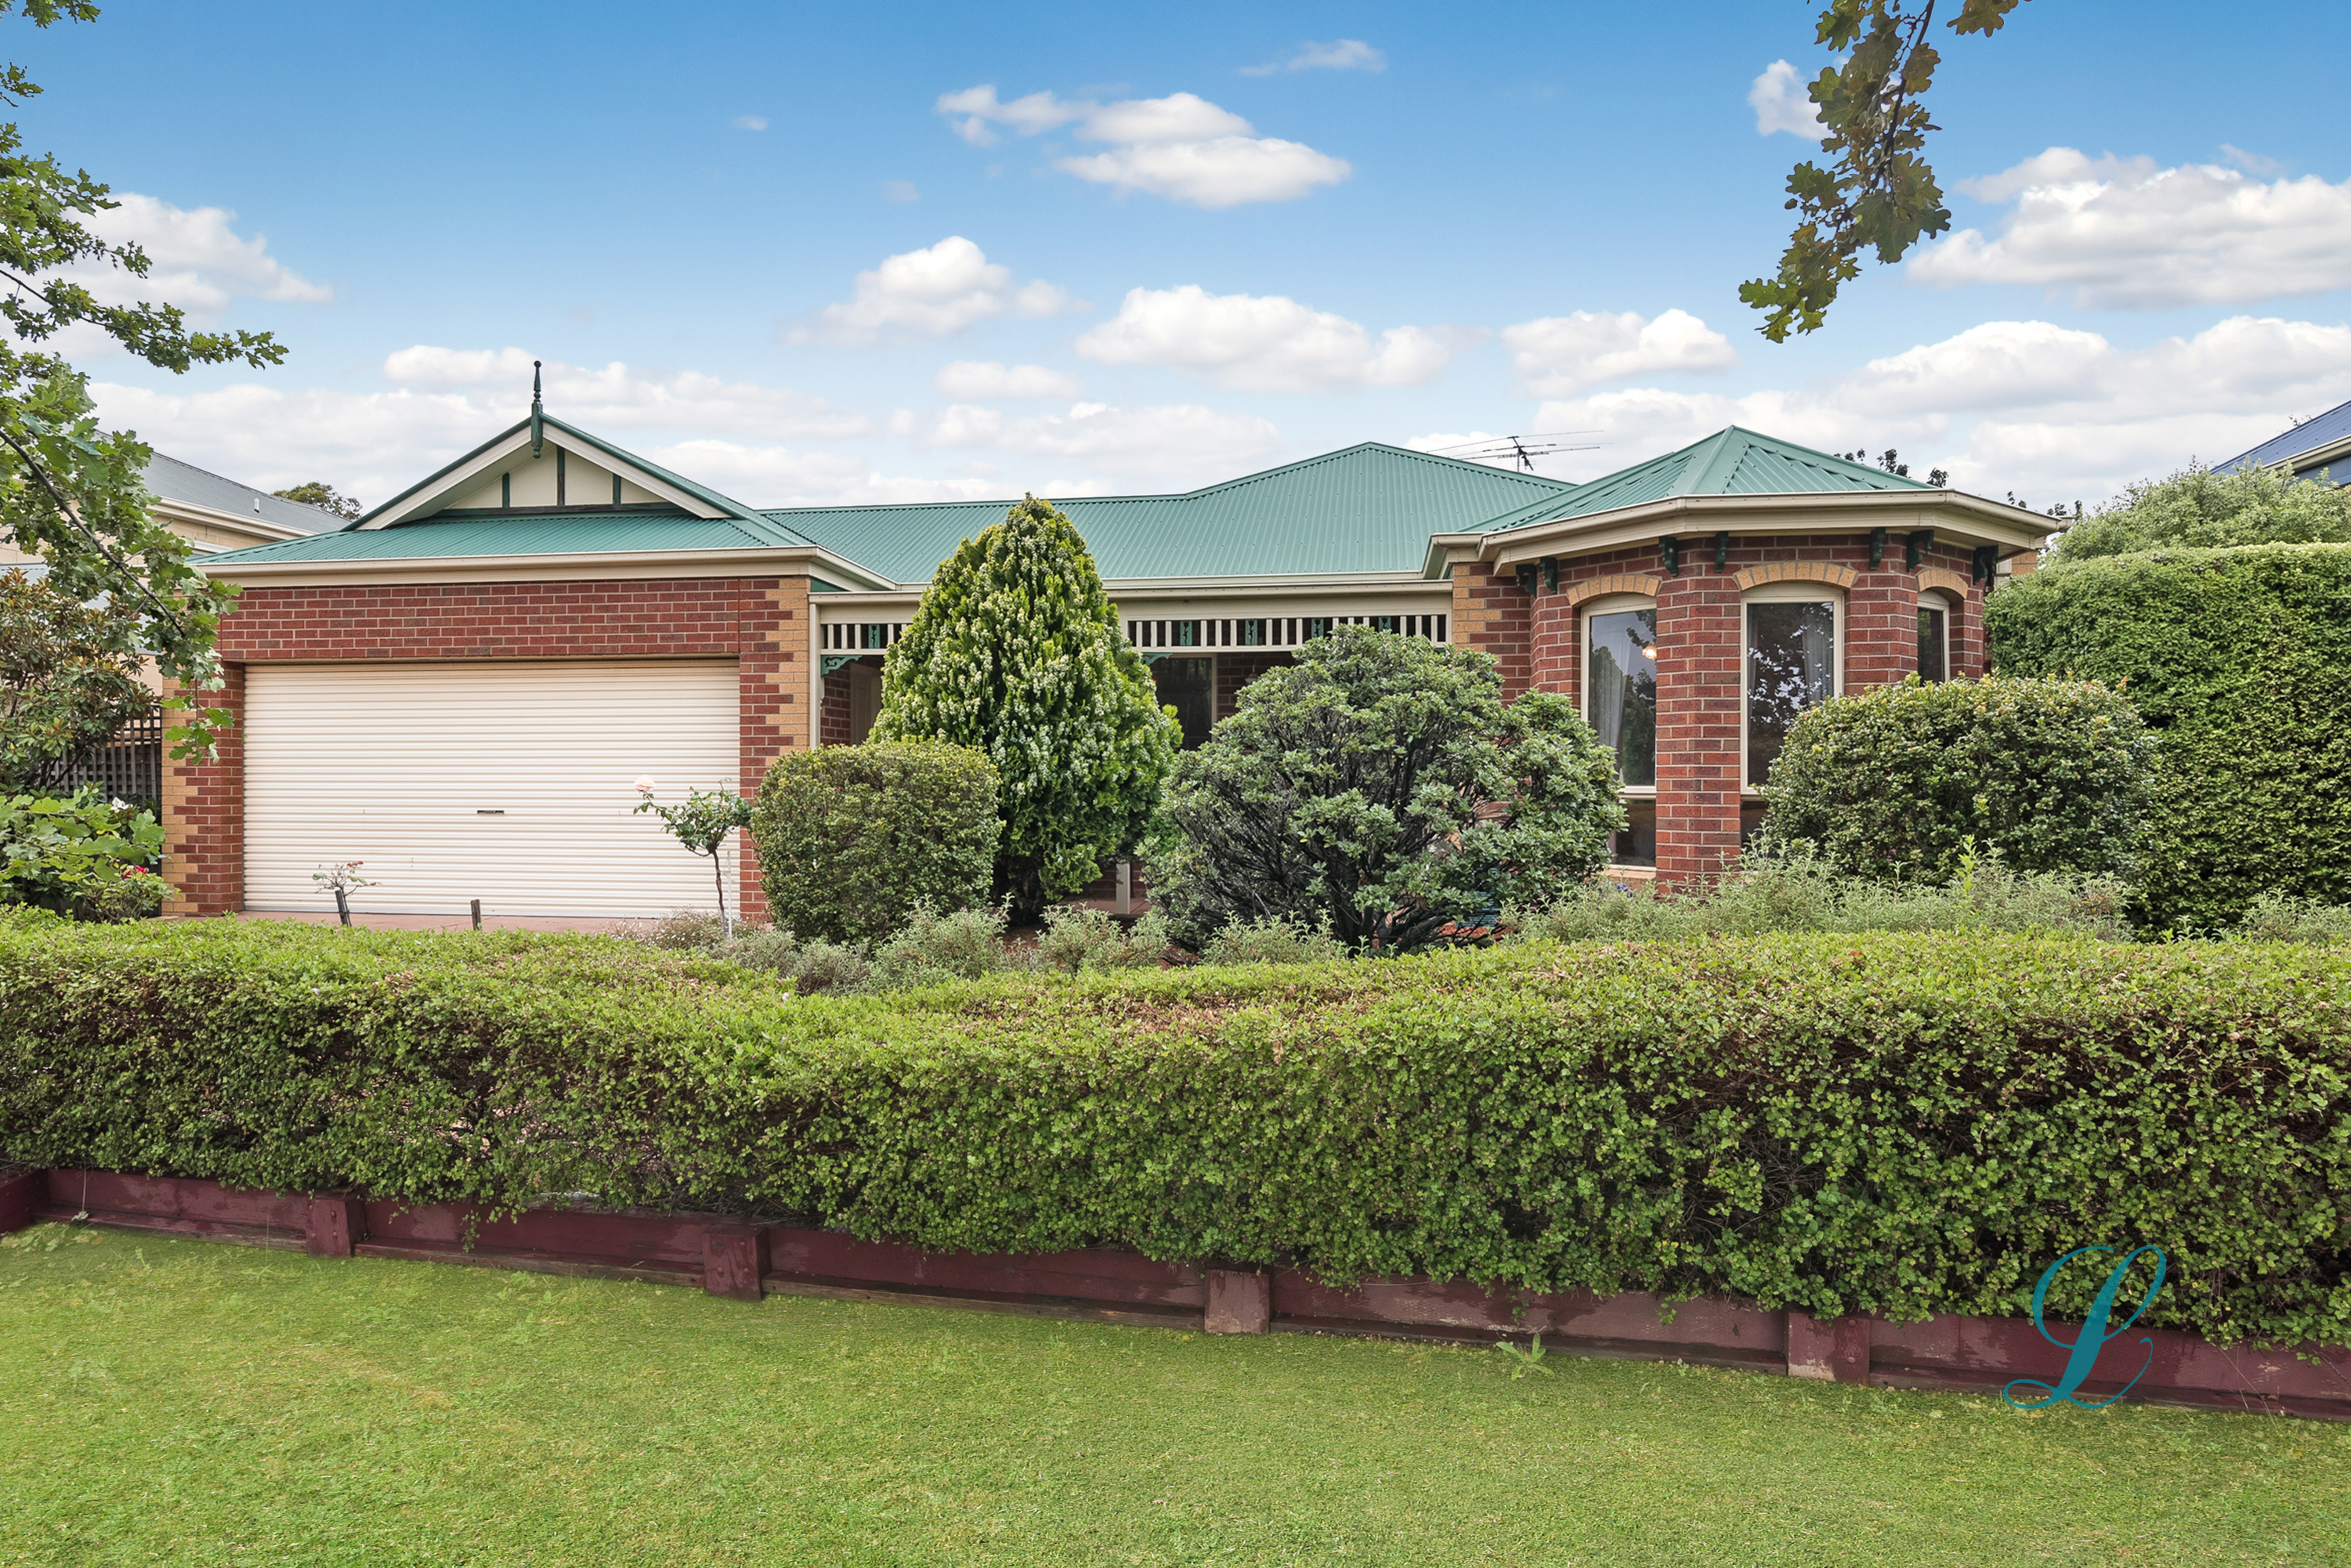 JACKSONS HILL – FANTASTIC FAMILY HOME